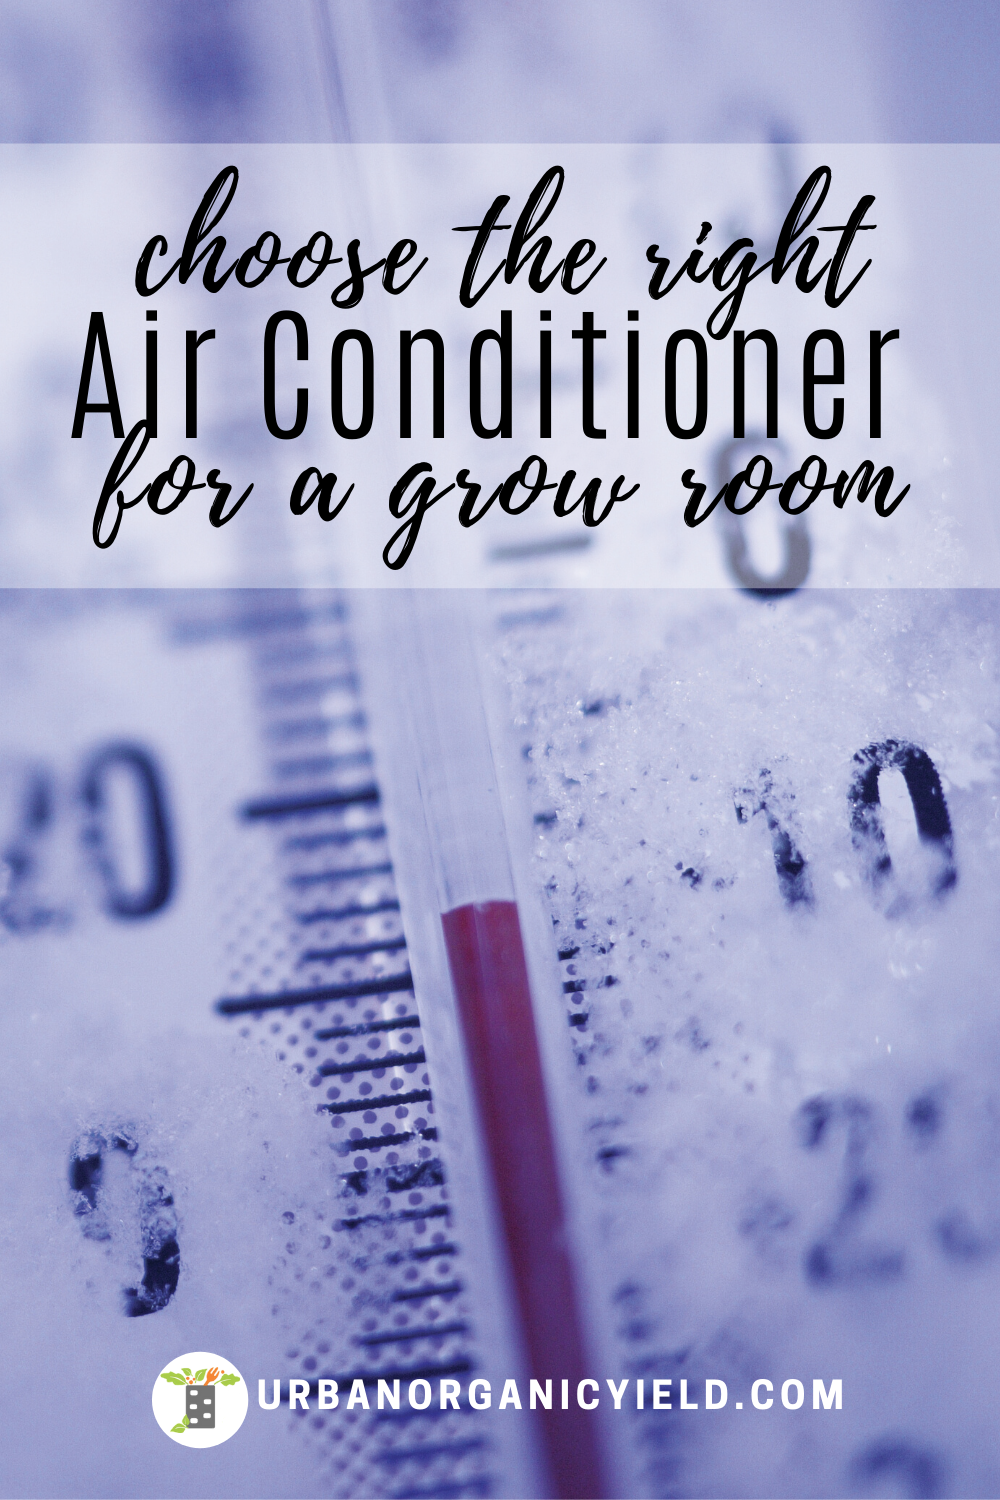 Best Air Conditioners For Grow Room & Grow Tent Choose